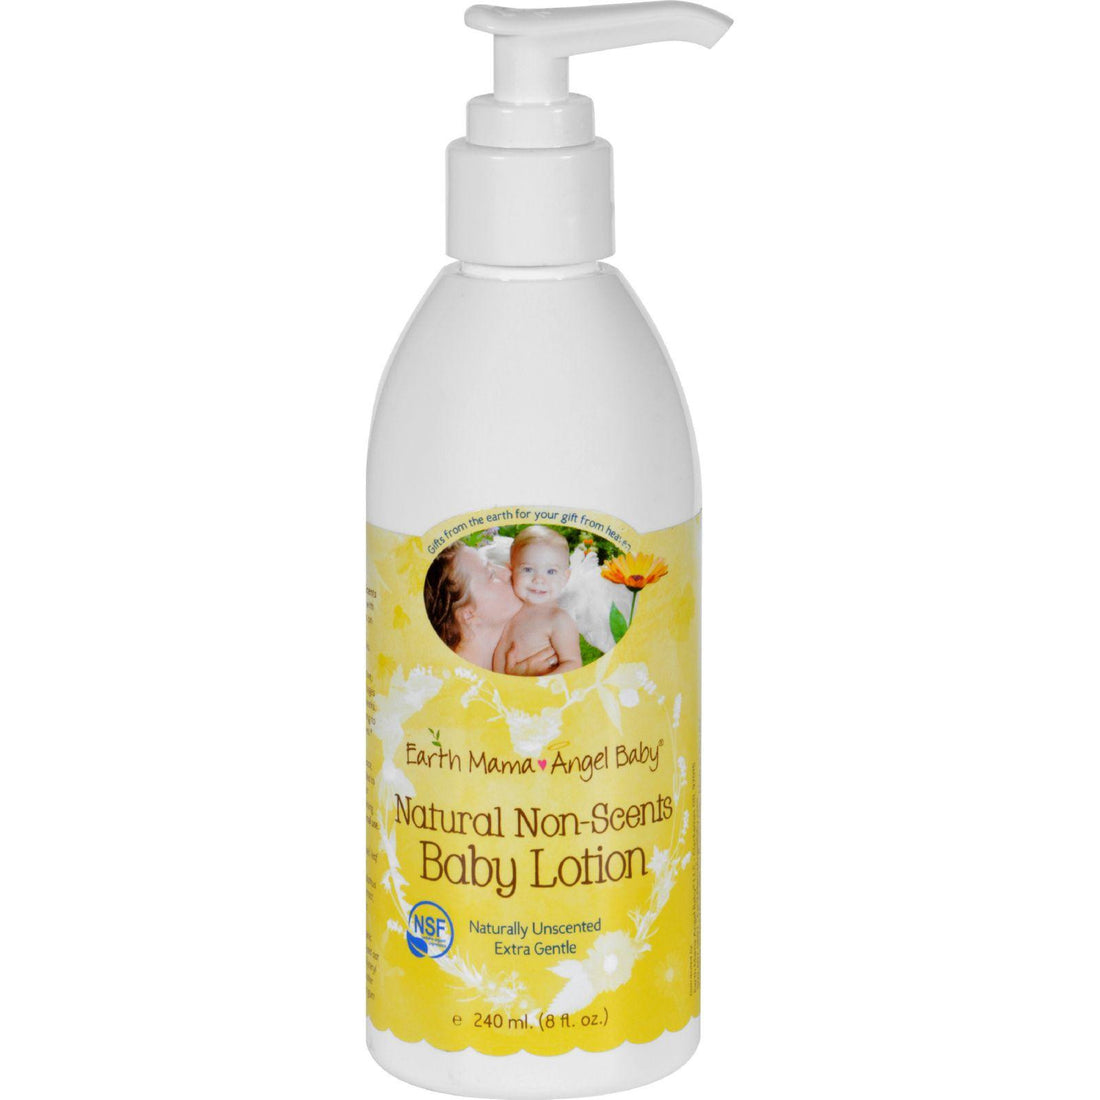 Mother Mantis: Earth Mama Angel Baby Lotion - Natural Non-scents - Fragrance Free - 8 Oz Earth Mama Angel Baby